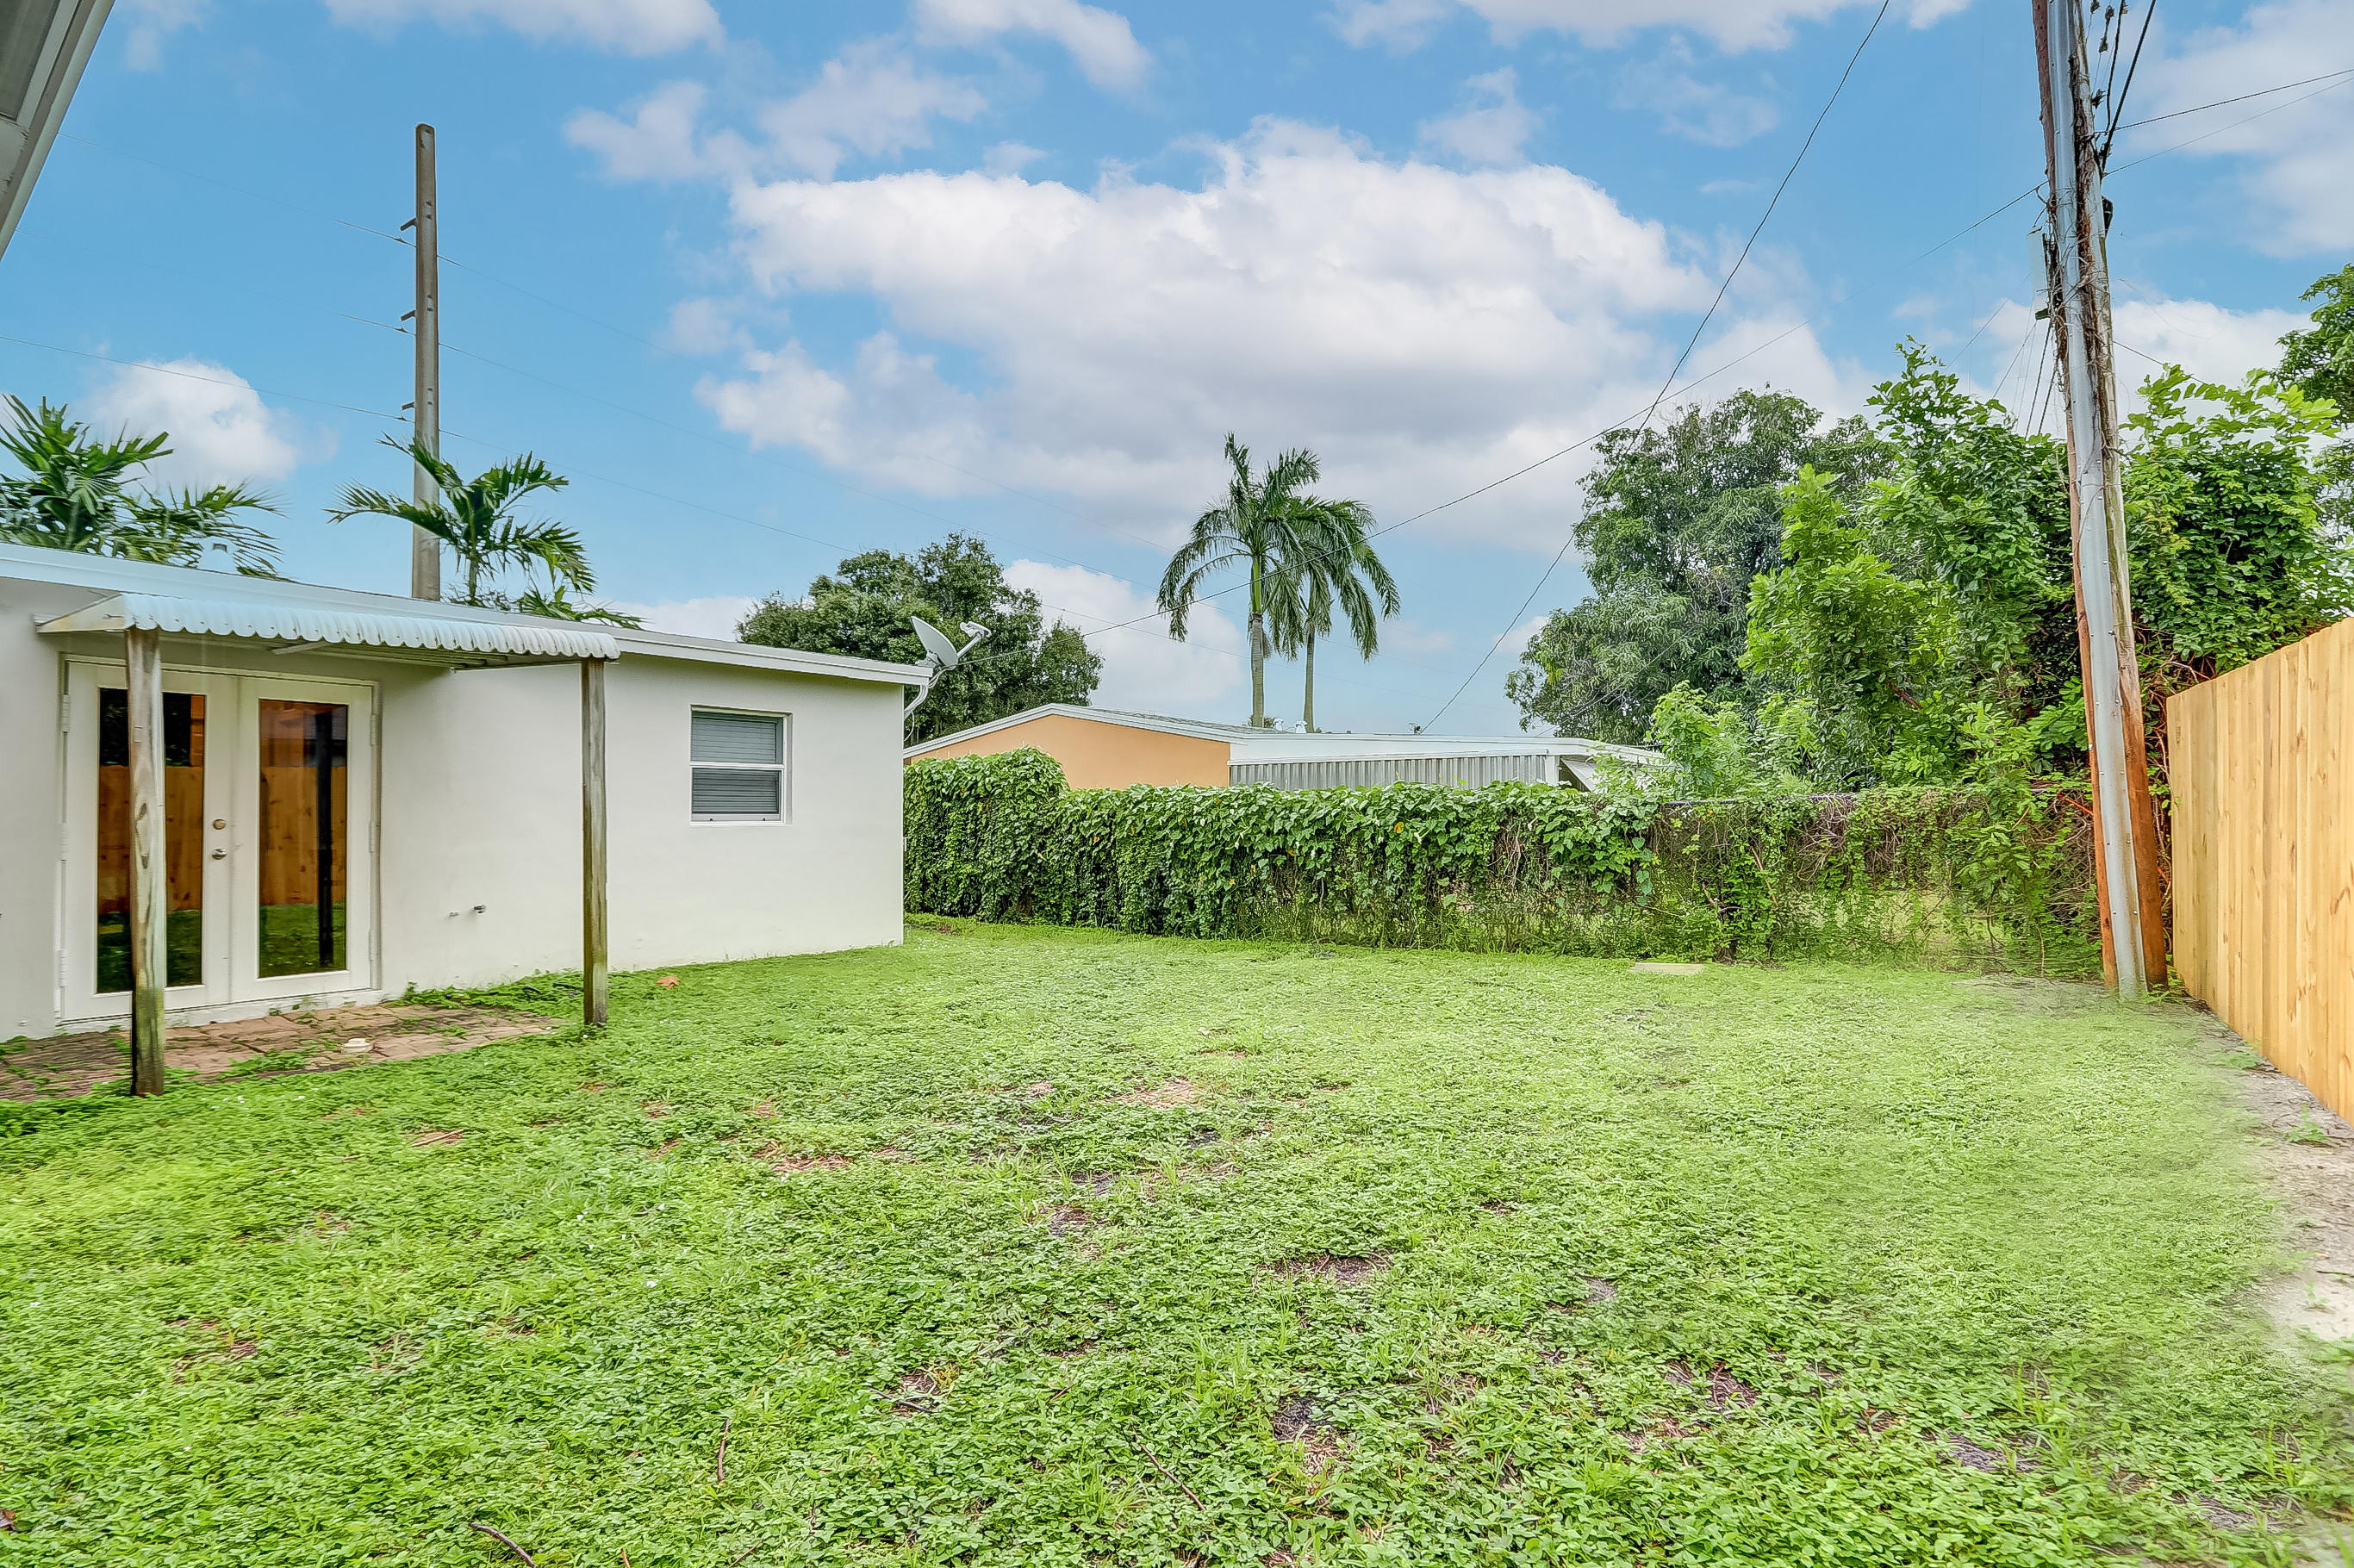 2665 NE 12th Avenue - 33064 - FL - Pompano Beach